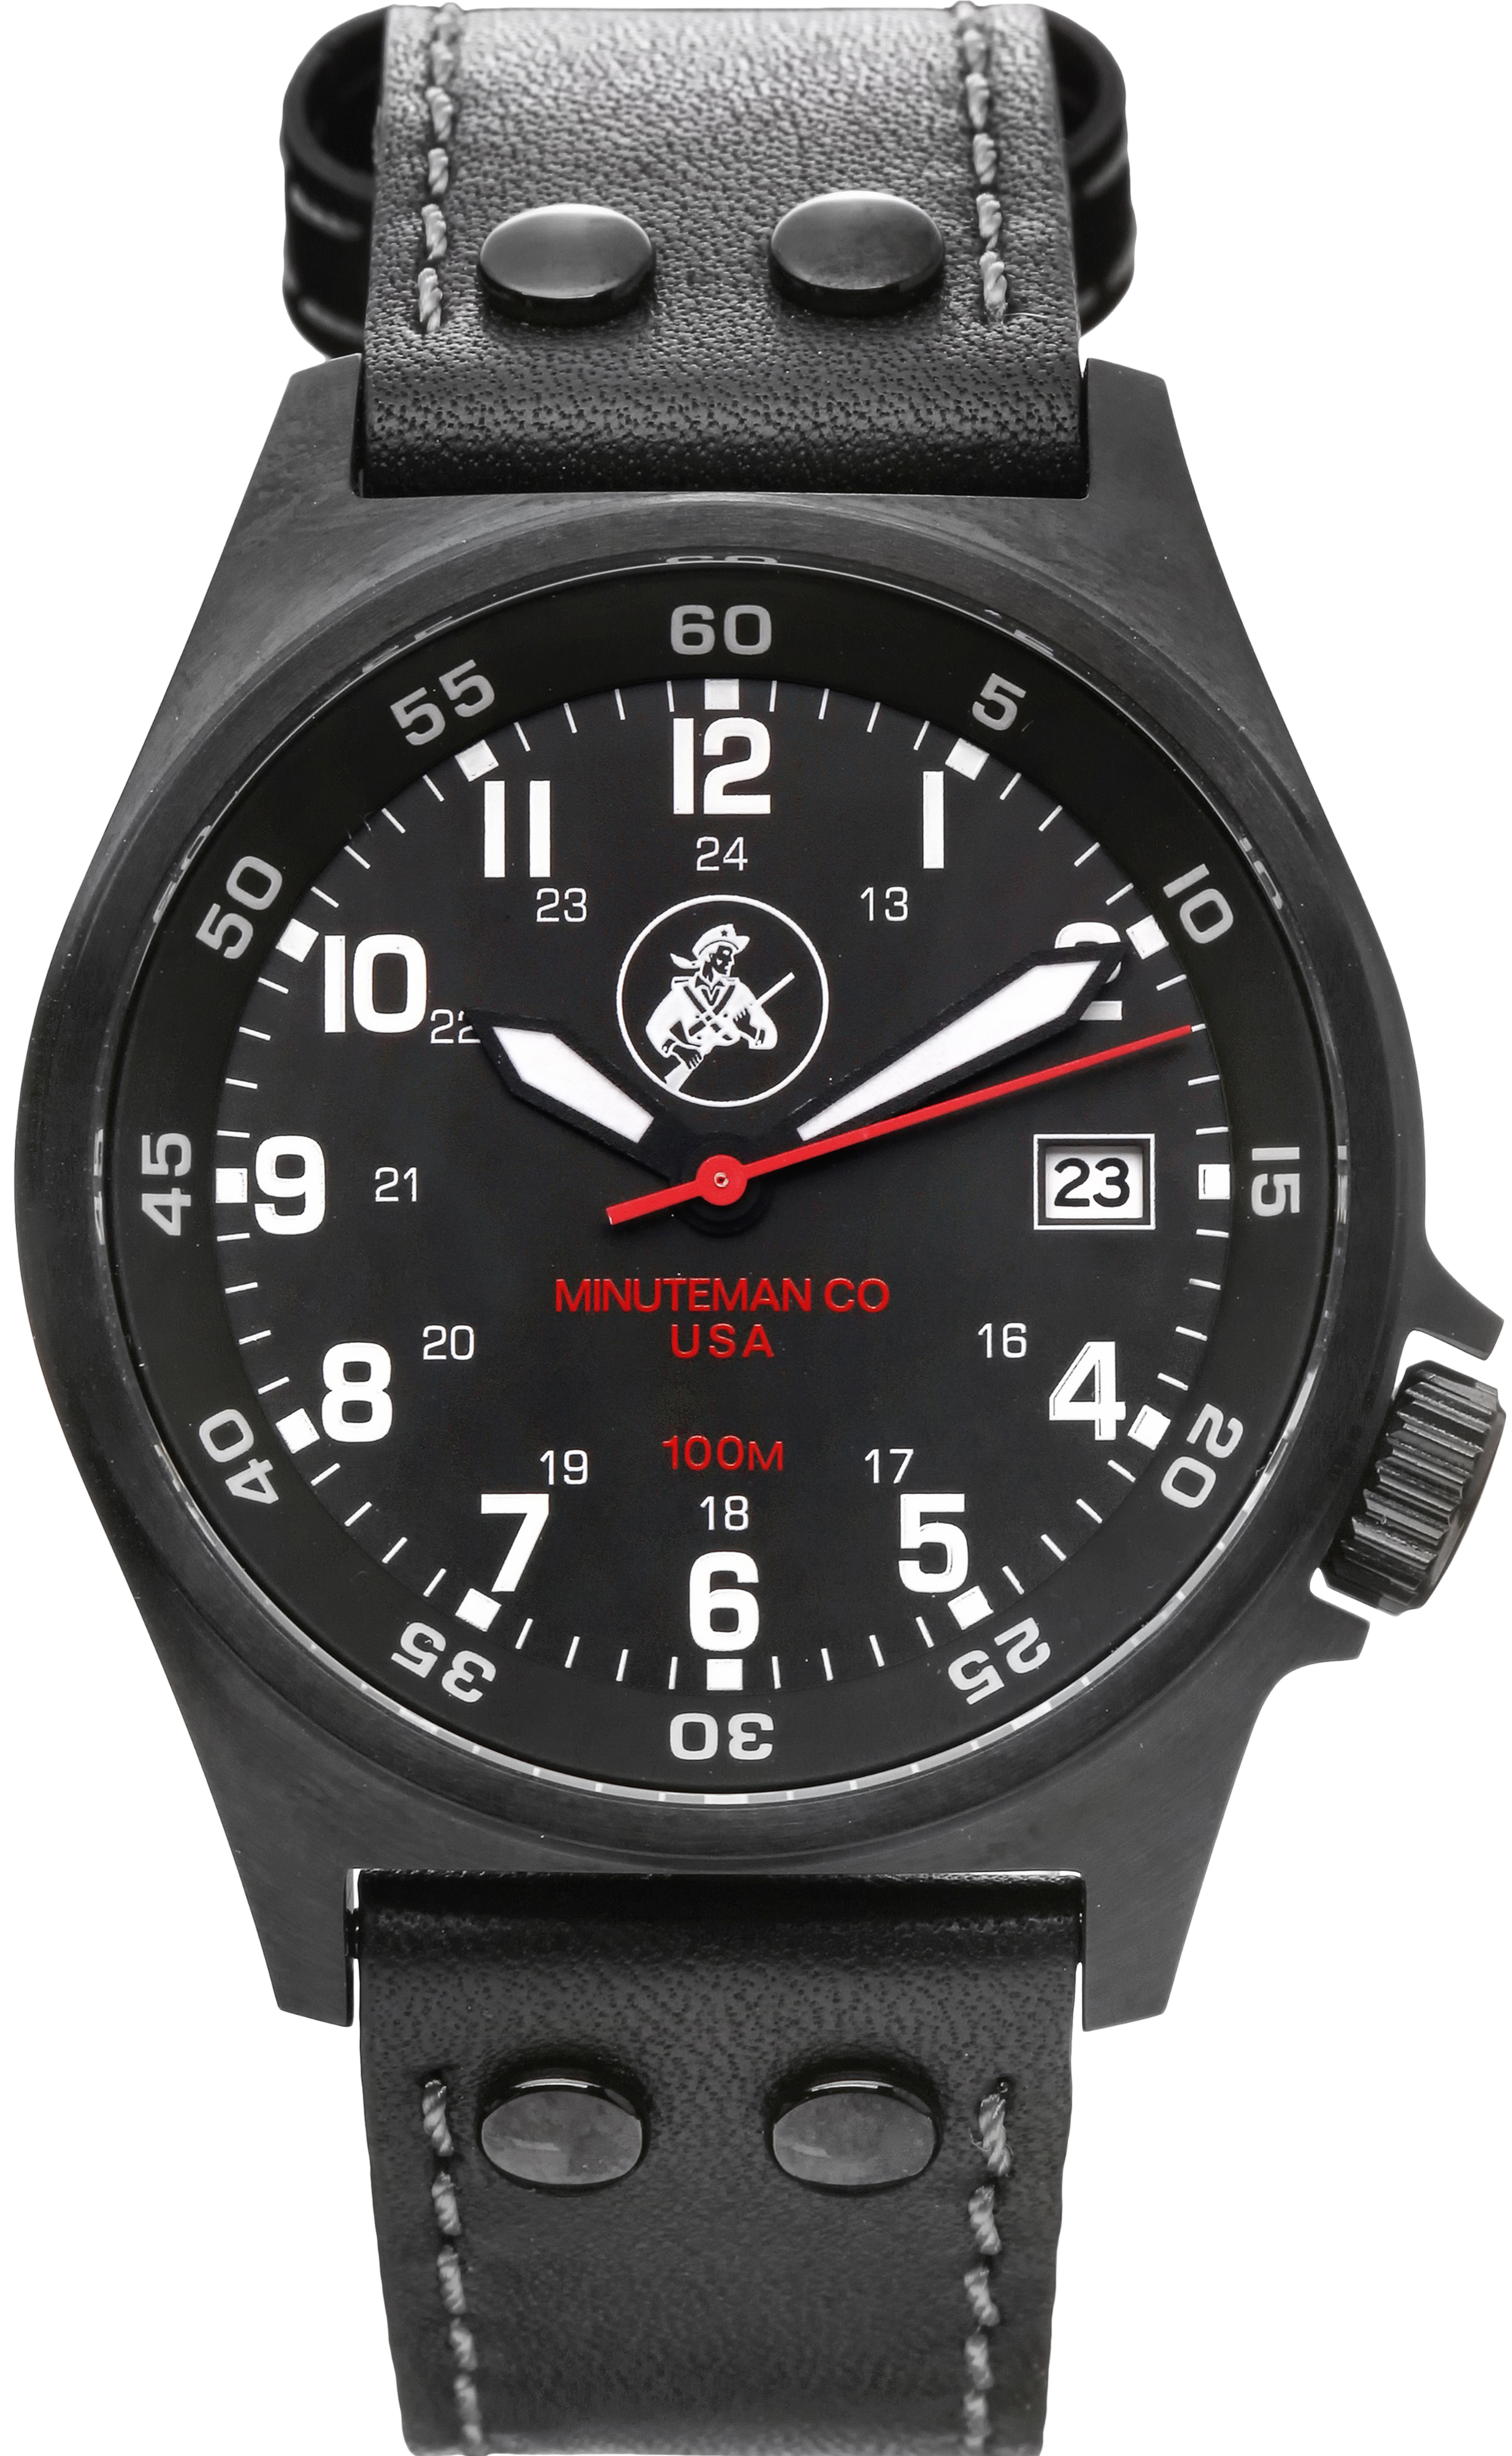 Minuteman Bennington PVD Wrist Watch assembled in the USA.